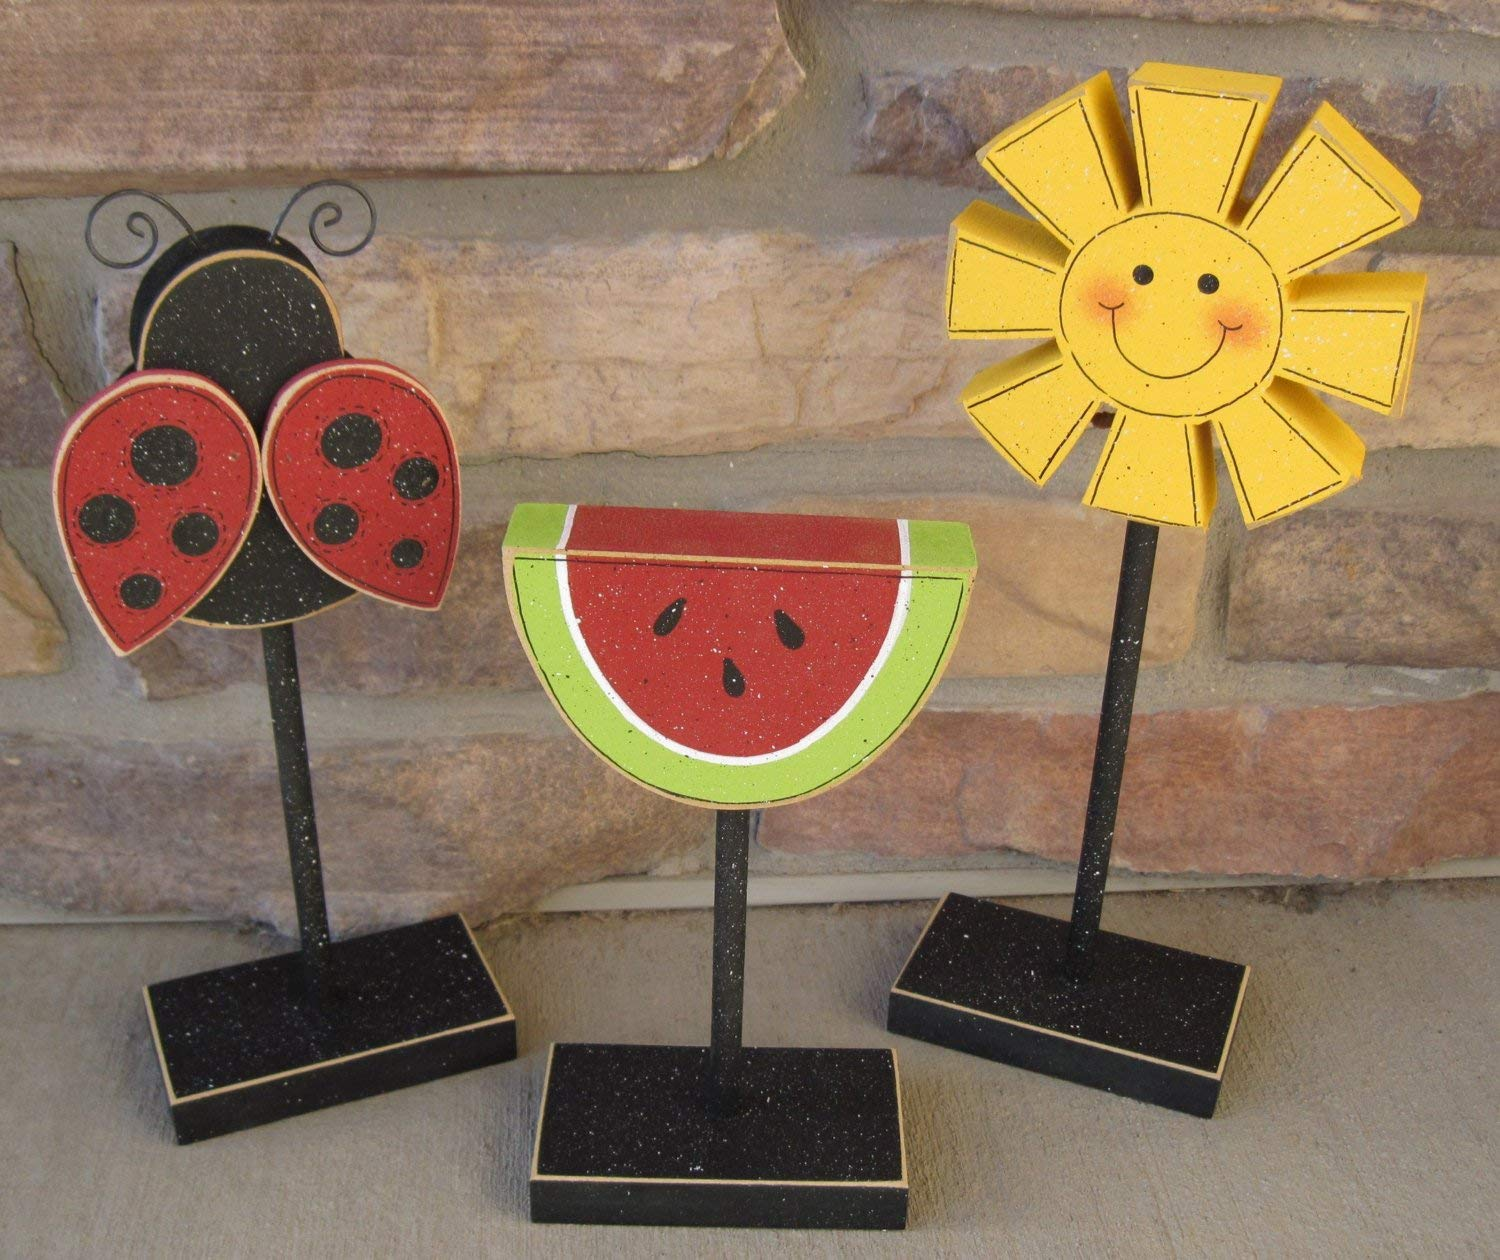 3 Tall Standing SUMMER THEMED Block SET with Sunshine, Lady Bug, and Watermelon for shelf, desk, office and home decor